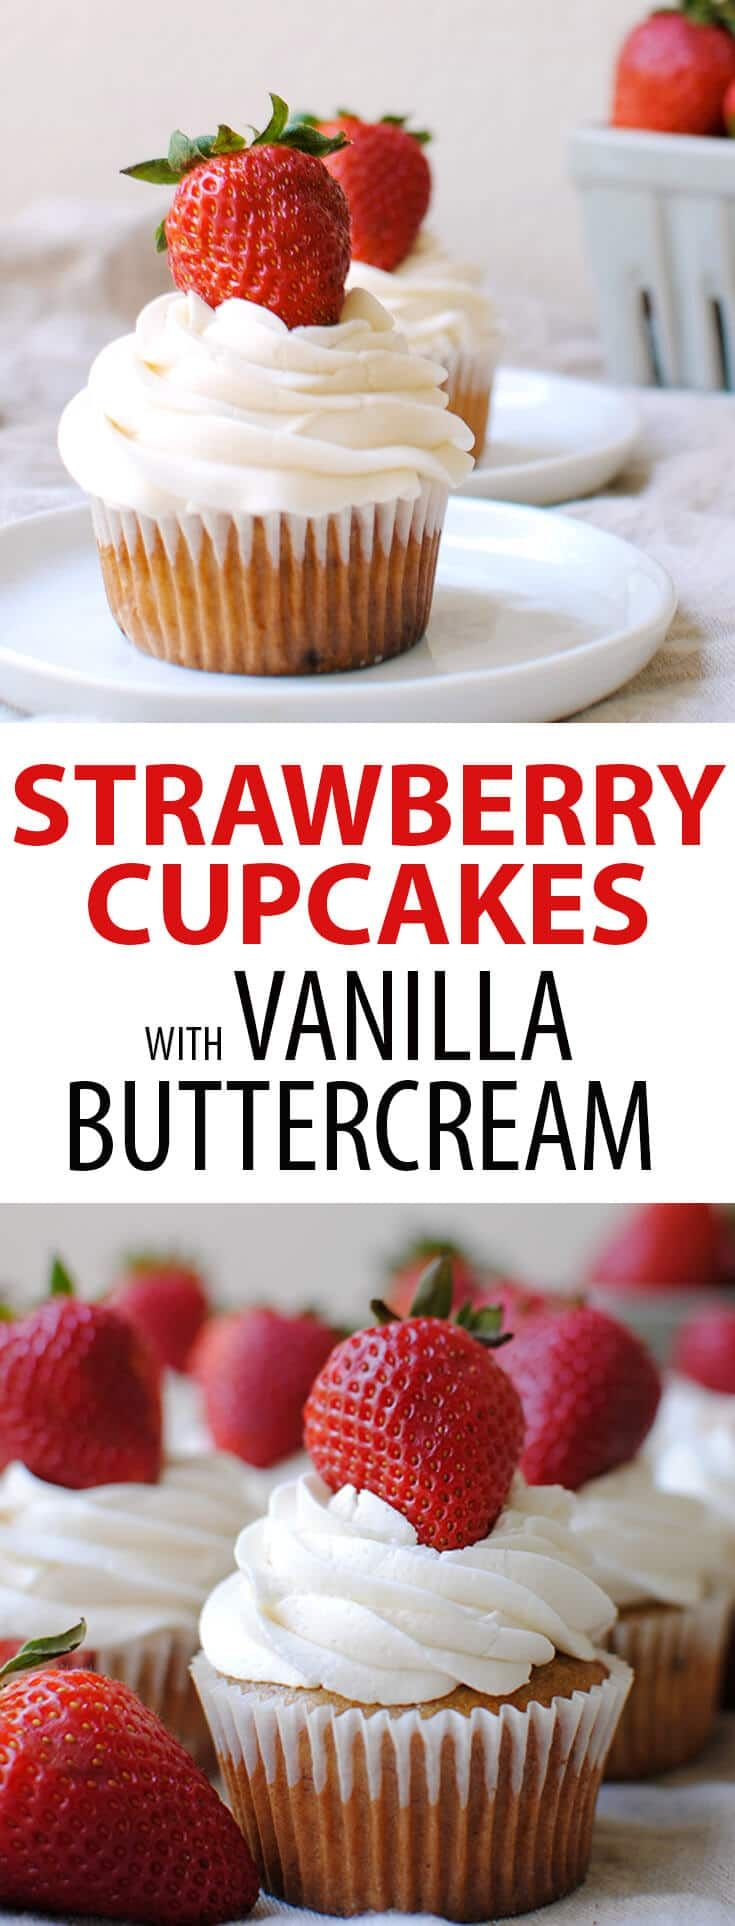 Fresh, juicy strawberries and a luscious vanilla buttercream frosting combine to make this easy and delicious recipe for strawberry cupcakes #letseatcake #cupcakes #cupcakerecipes #cakes #strawberryrecipes #food #foodrecipes #fooddrink #yummyrecipes #buttercream #buttercreamfrosting #buttercreamrecipes #deliciousfood #dessertrecipes #allrecipes #buzzffeed #strawberrycupcakes #cupcakerecipe #easycupcakes #cupcakeideas #summerrecipes #bakingrecipes via @LetsEatCakeBlog